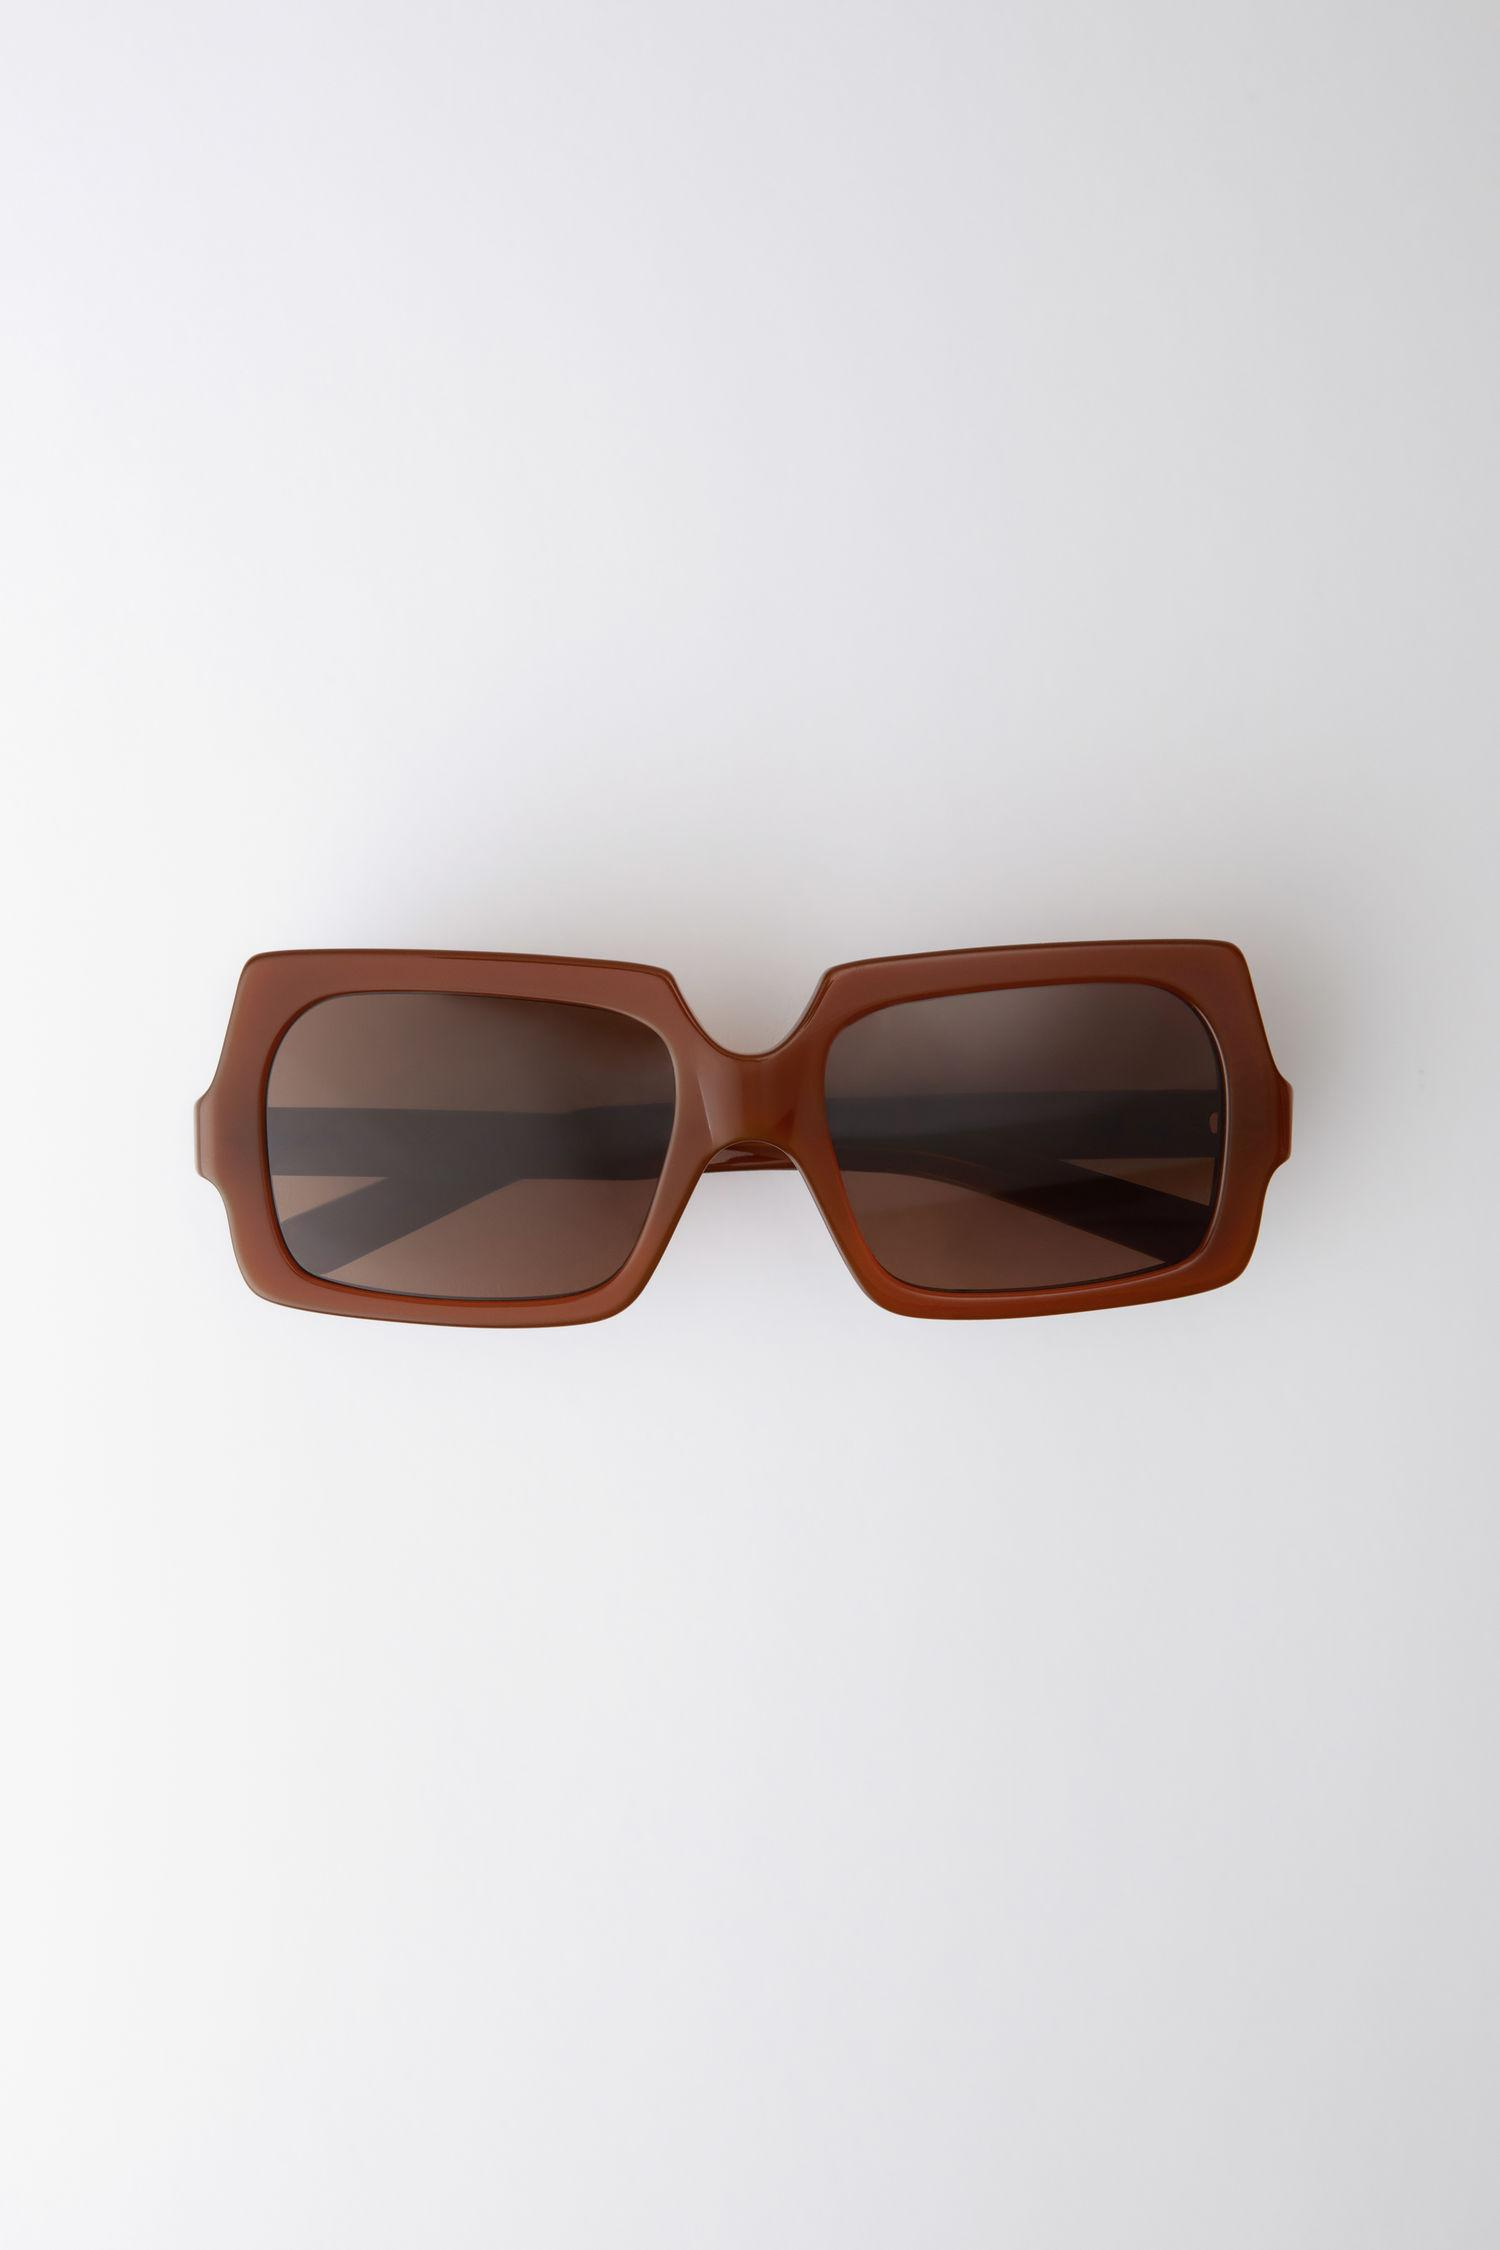 Brown and Gold Isabella Sunglasses Acne Studios zpr4Nrq91